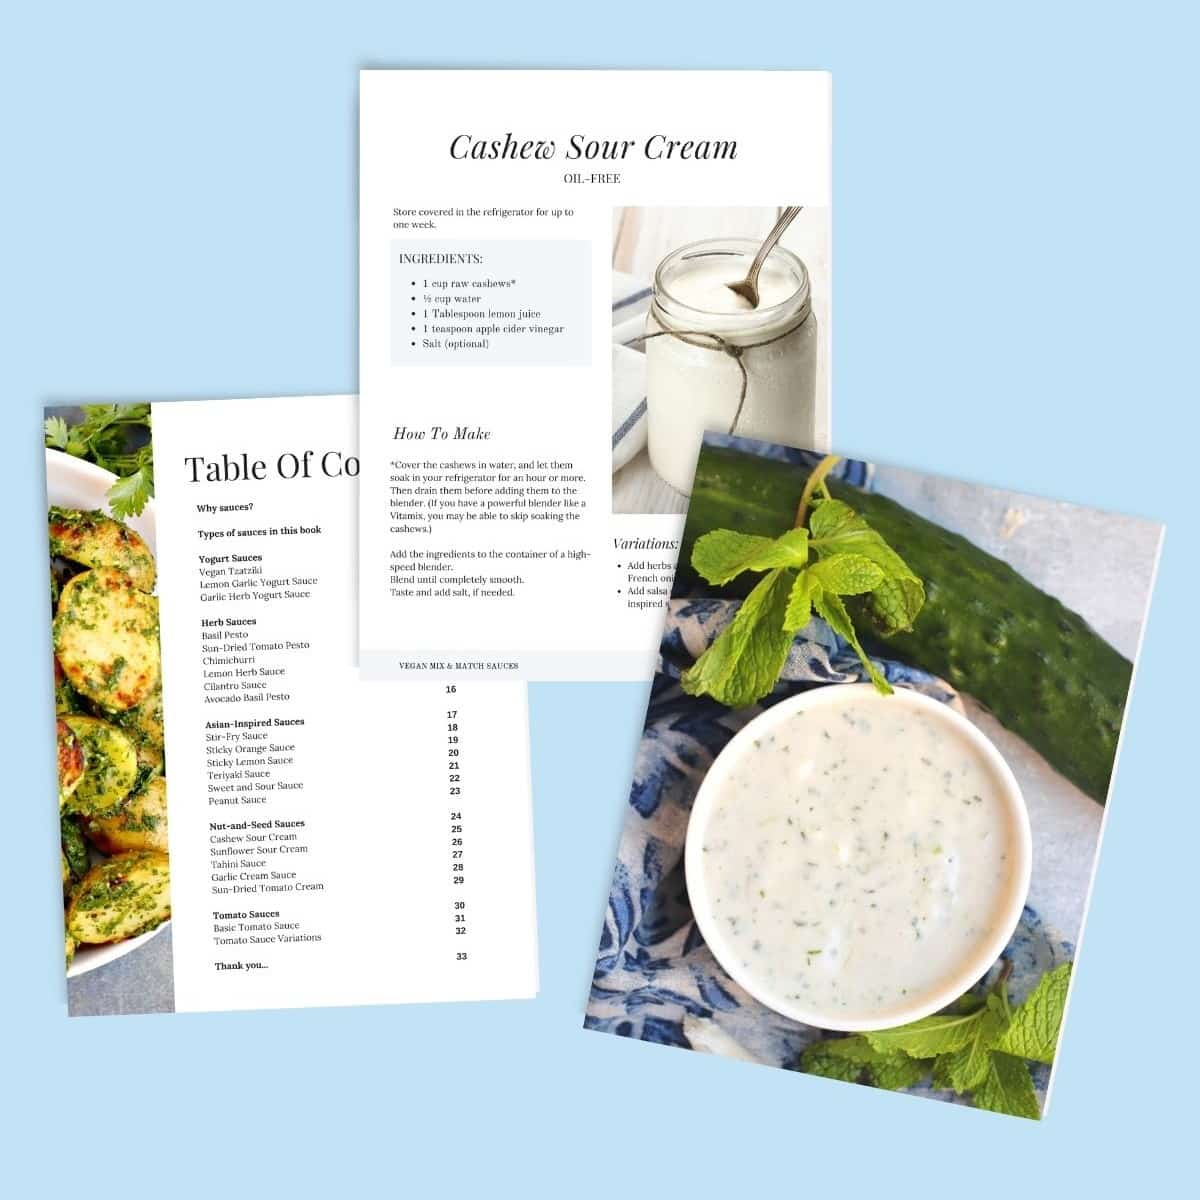 Sample pages from the eBook including the table of contents and a recipe